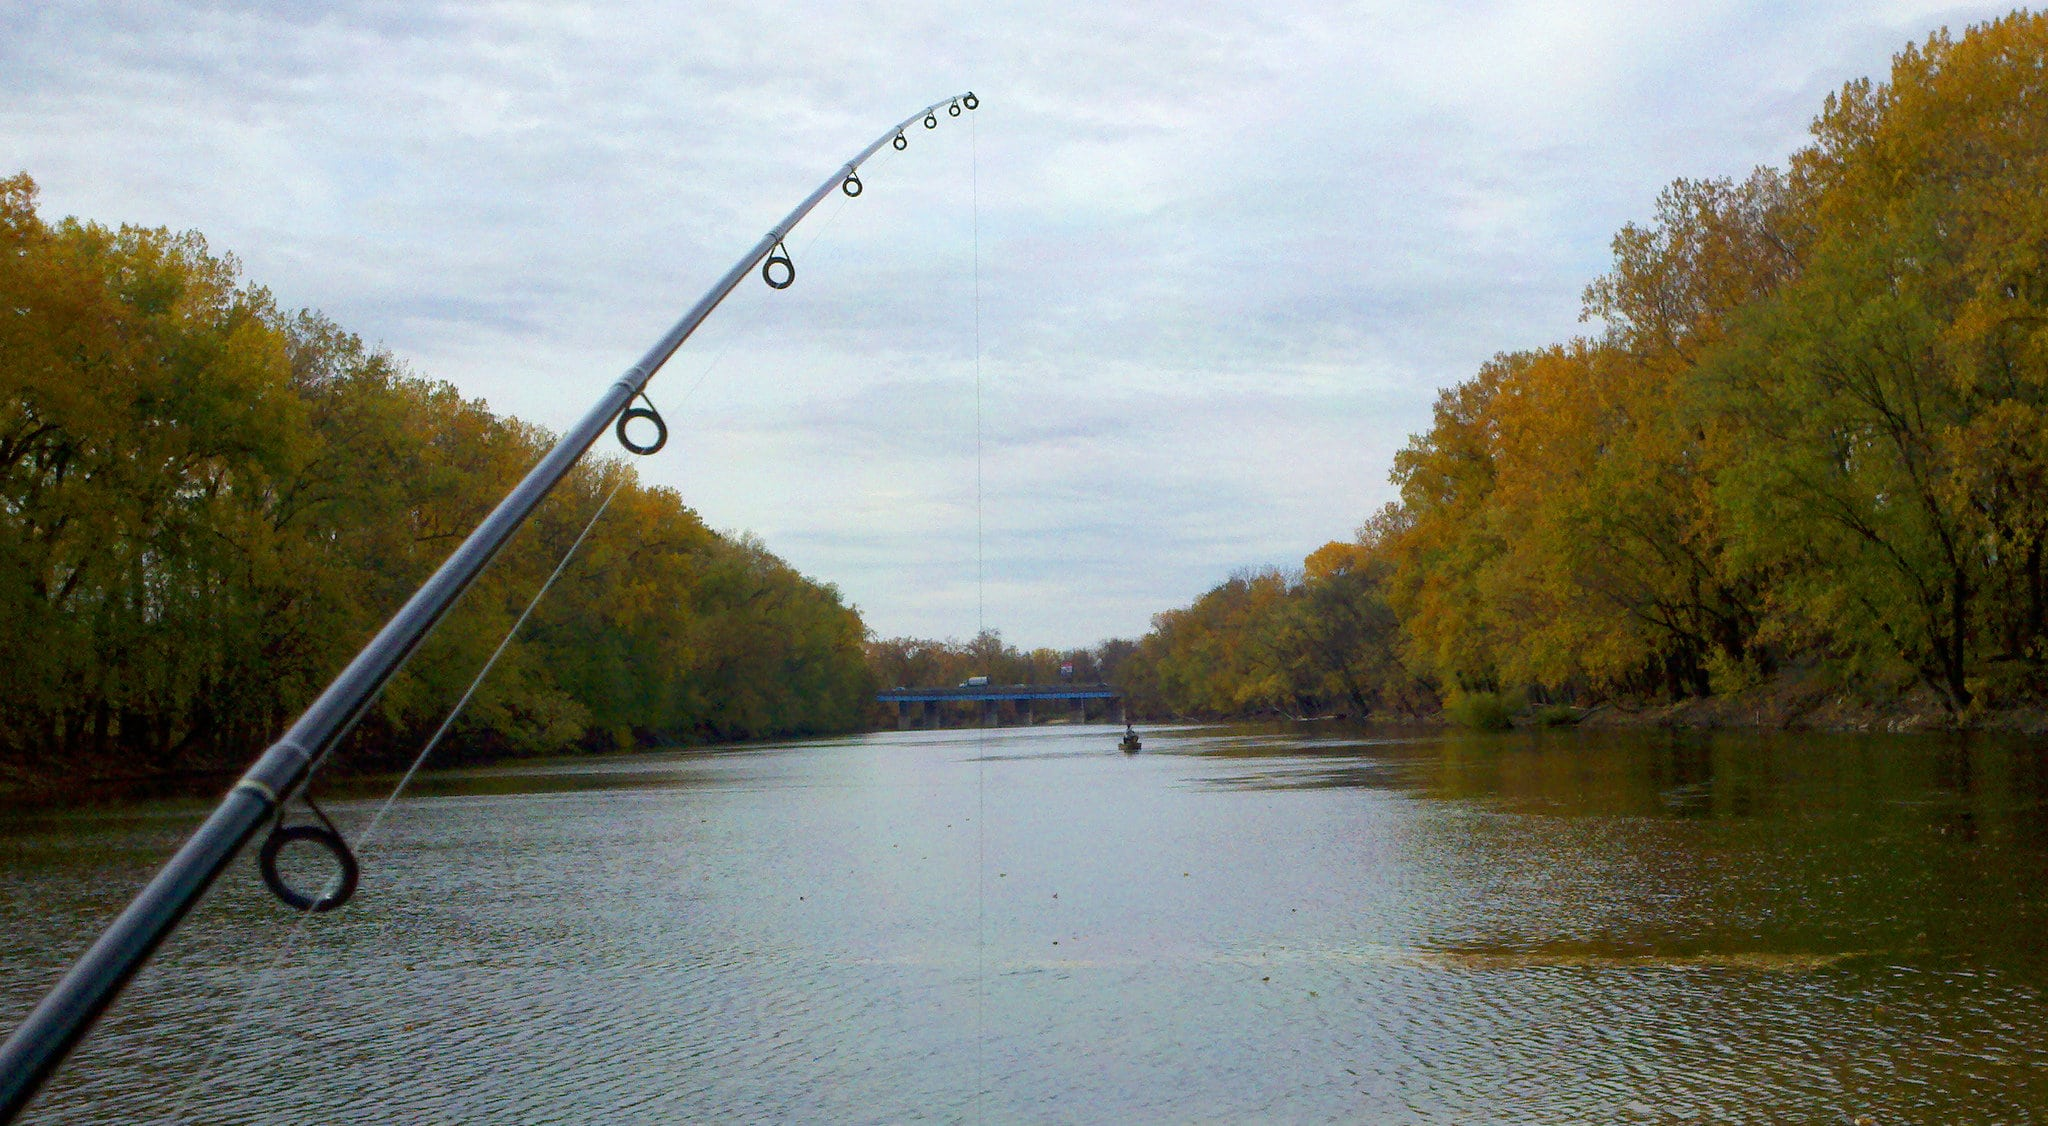 Beginners river fishing tips swim selection in small rivers for River fishing tips